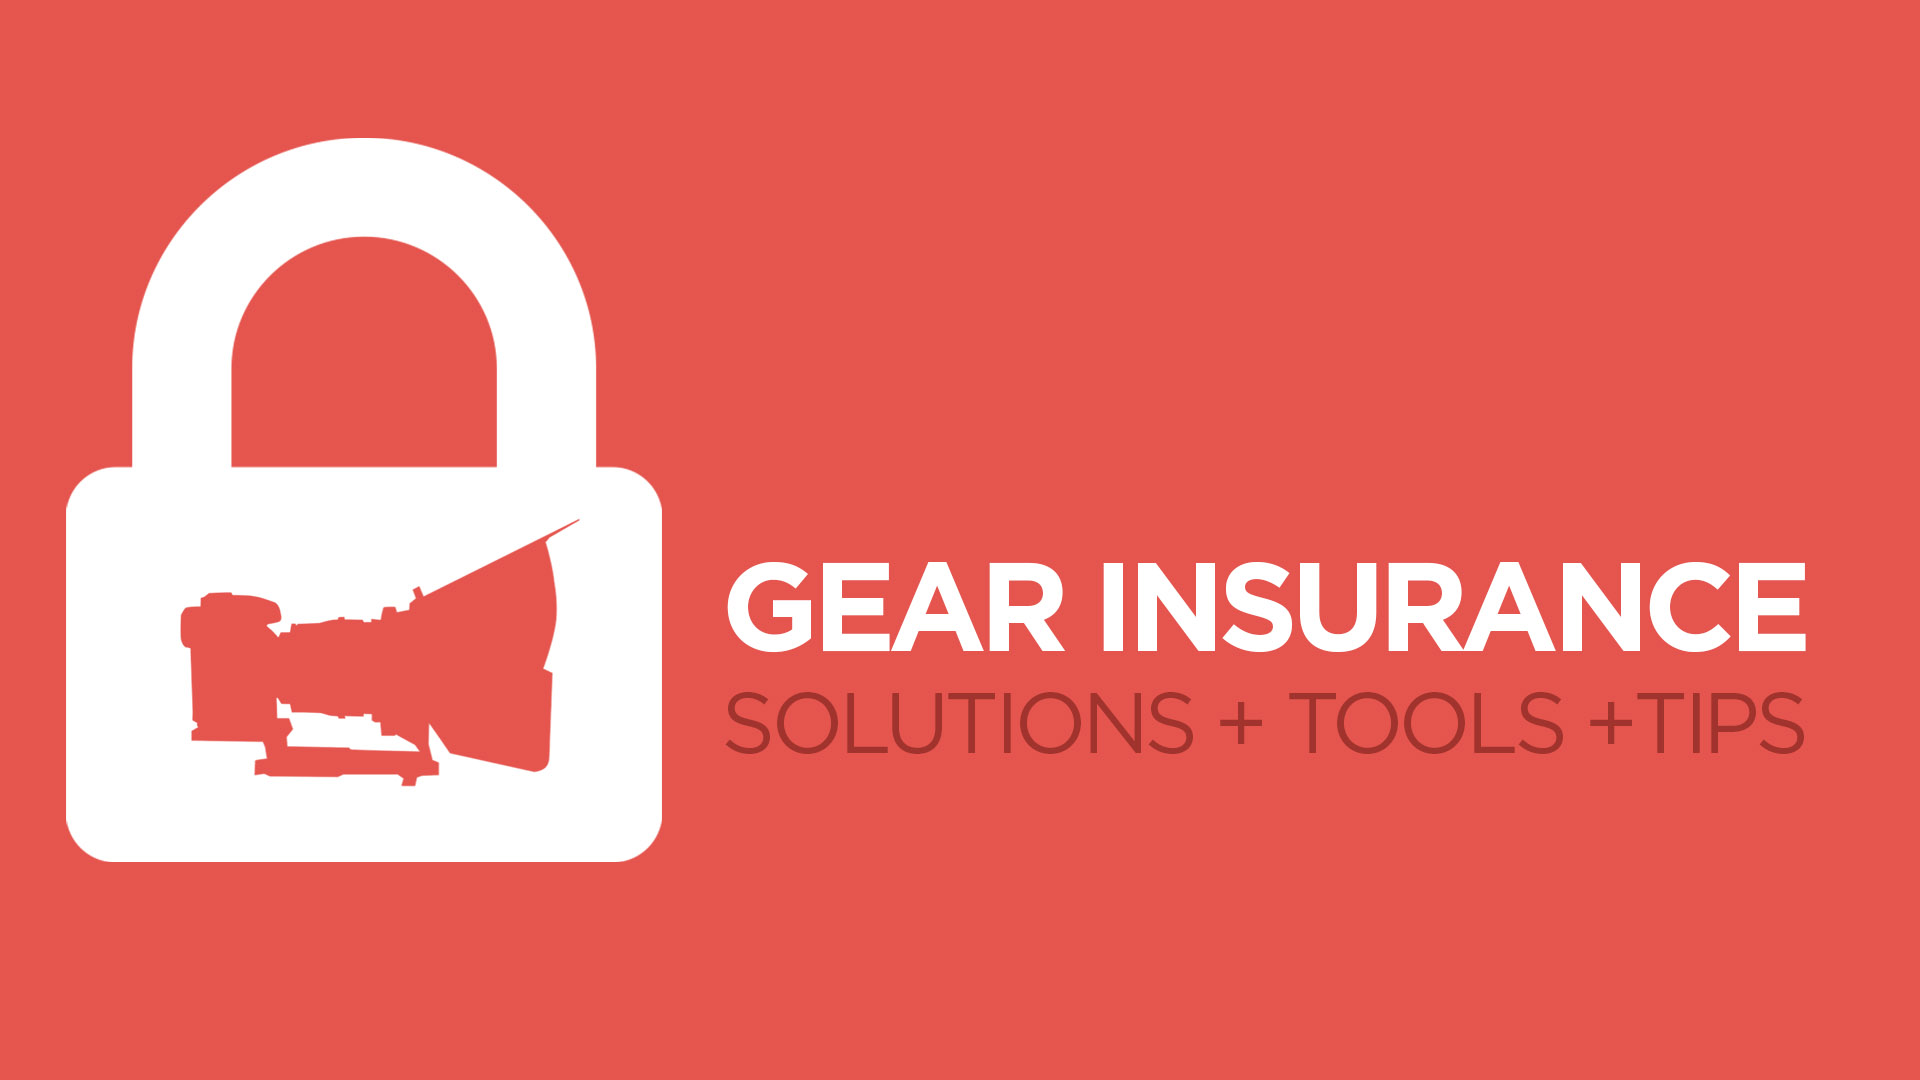 Gear Insurance: Best Solutions, Tips and Tools